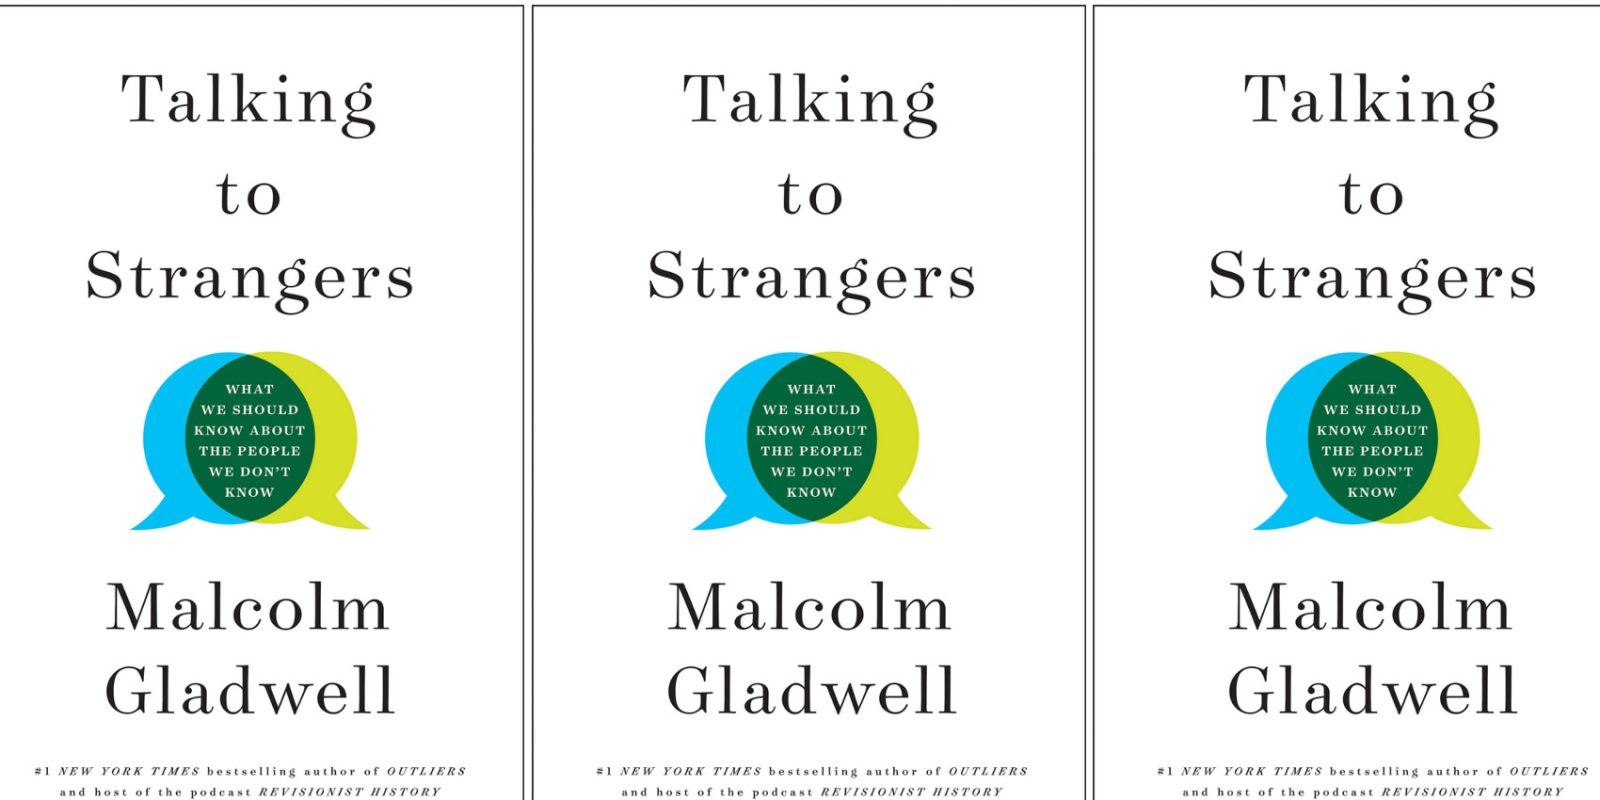 Malcolm Gladwell's Talking to Strangers Kindle Book drops to $5 (Reg. $18+)